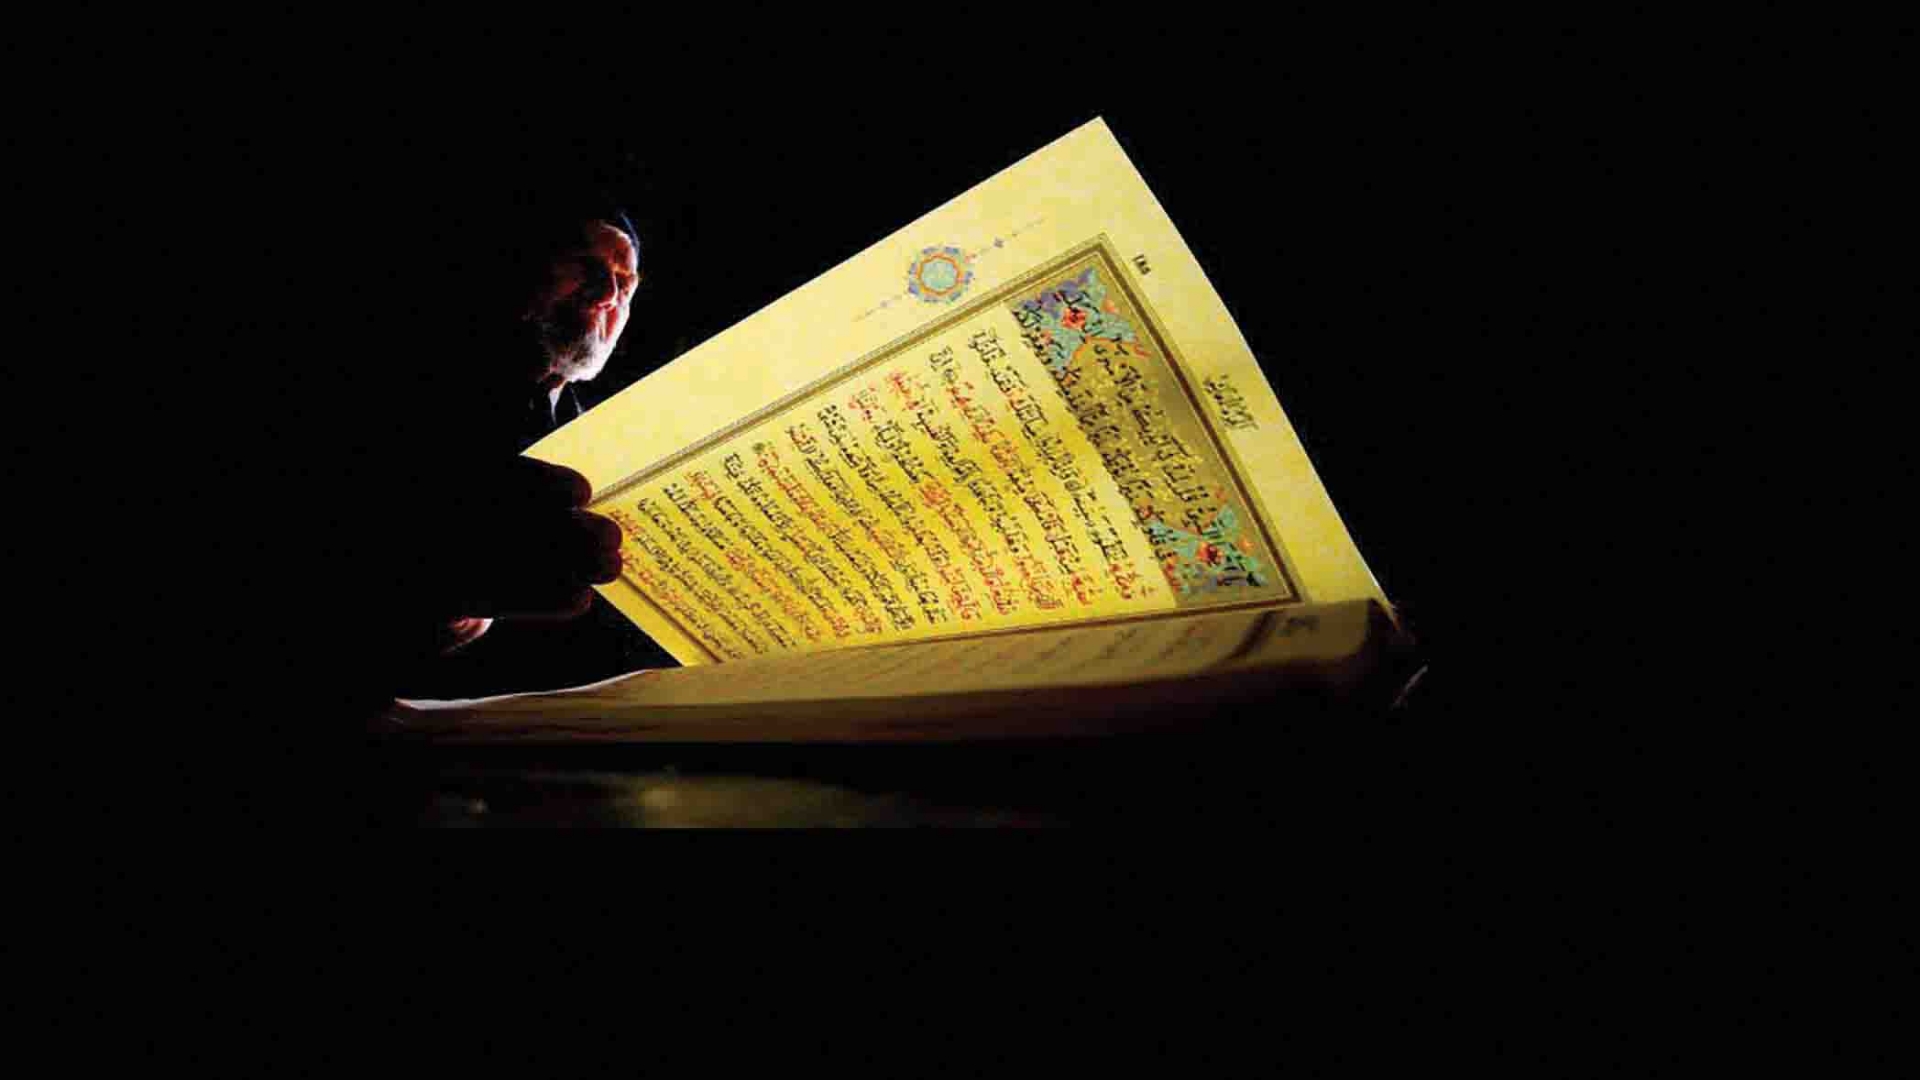 The Qur'an is the Word of Allah, the Lord of the Worlds